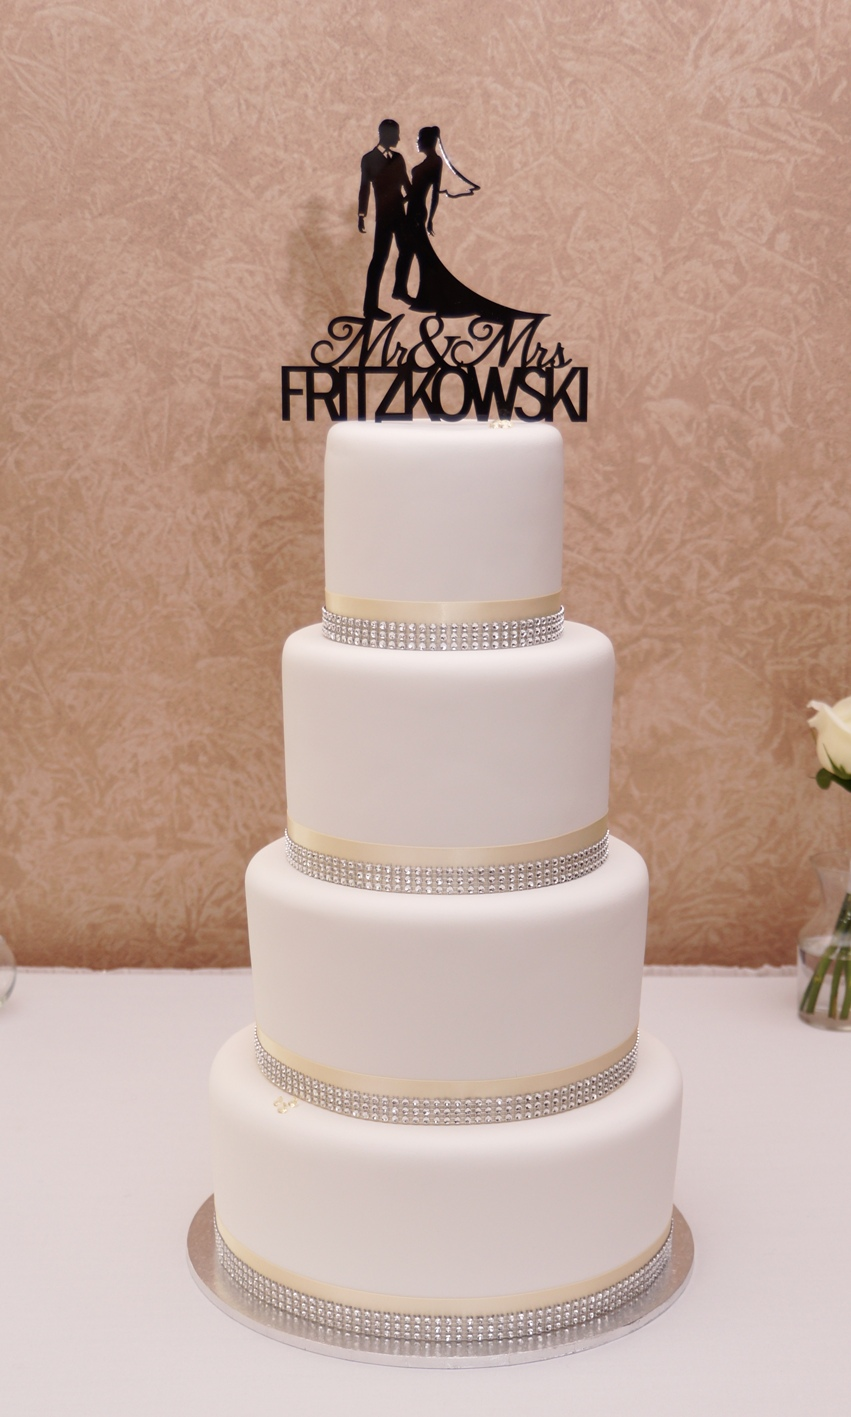 4 Tier White Fondant with Ivory and diam